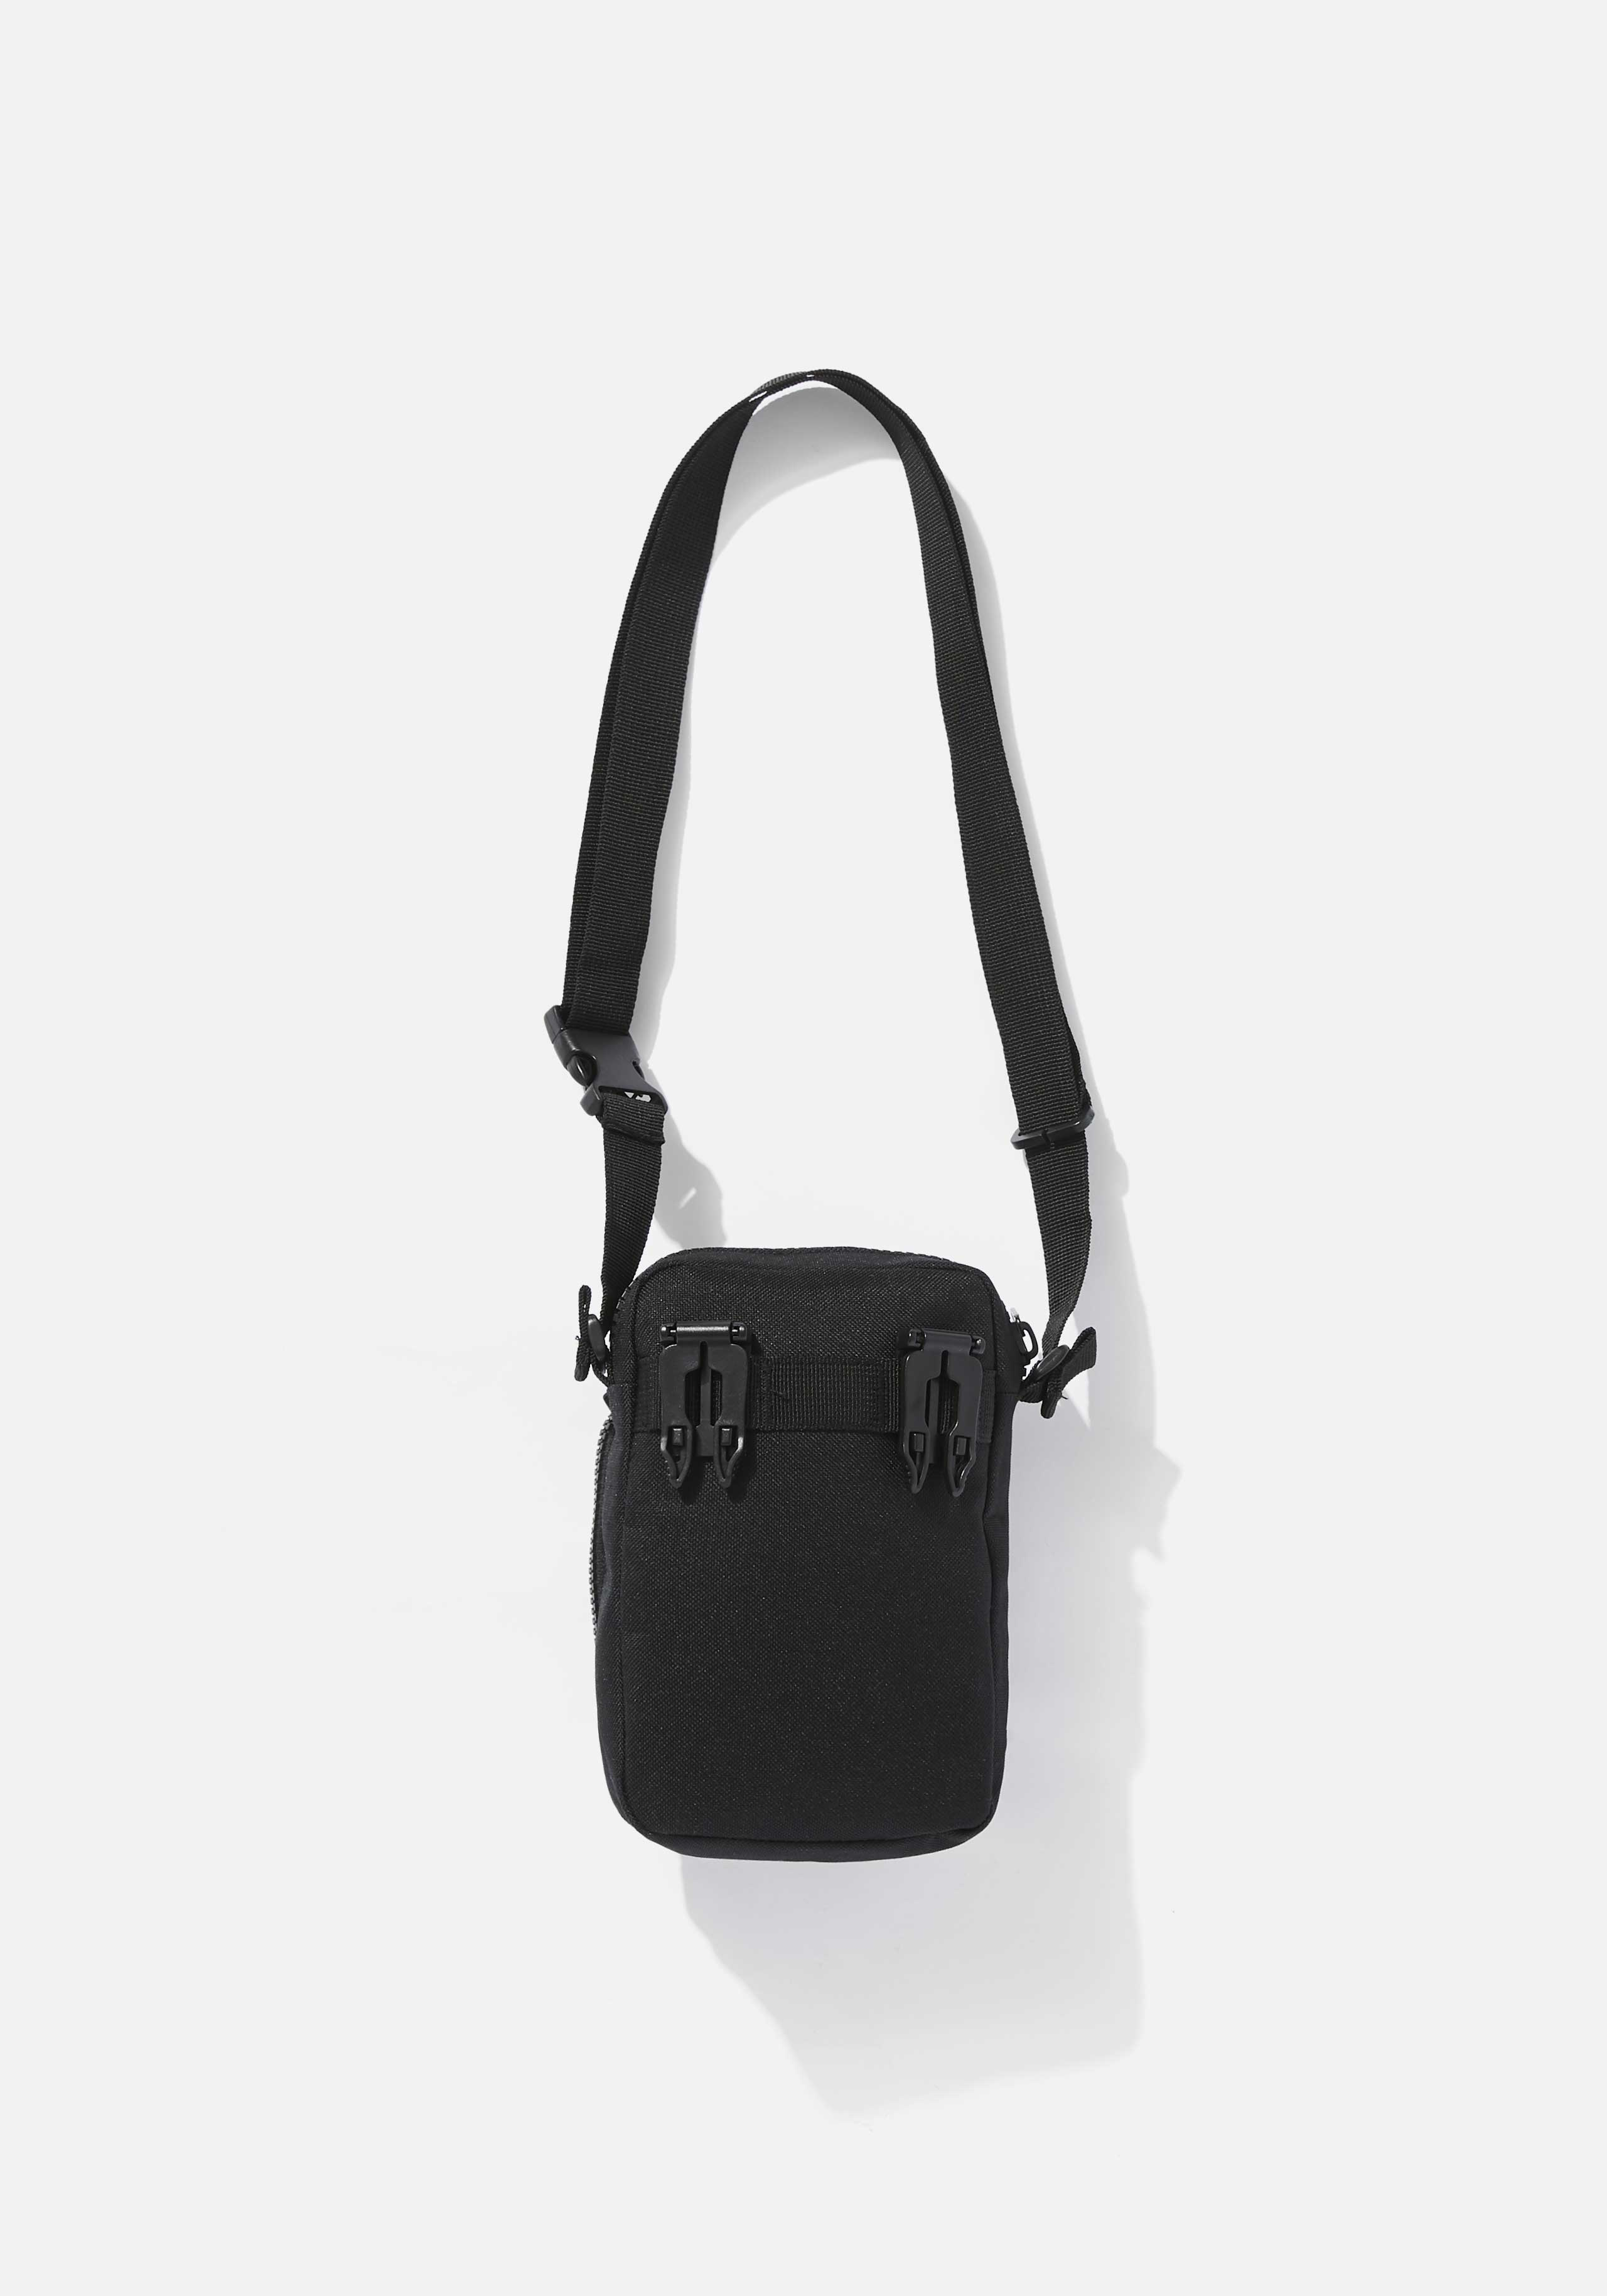 mki itc cross body bag small 2